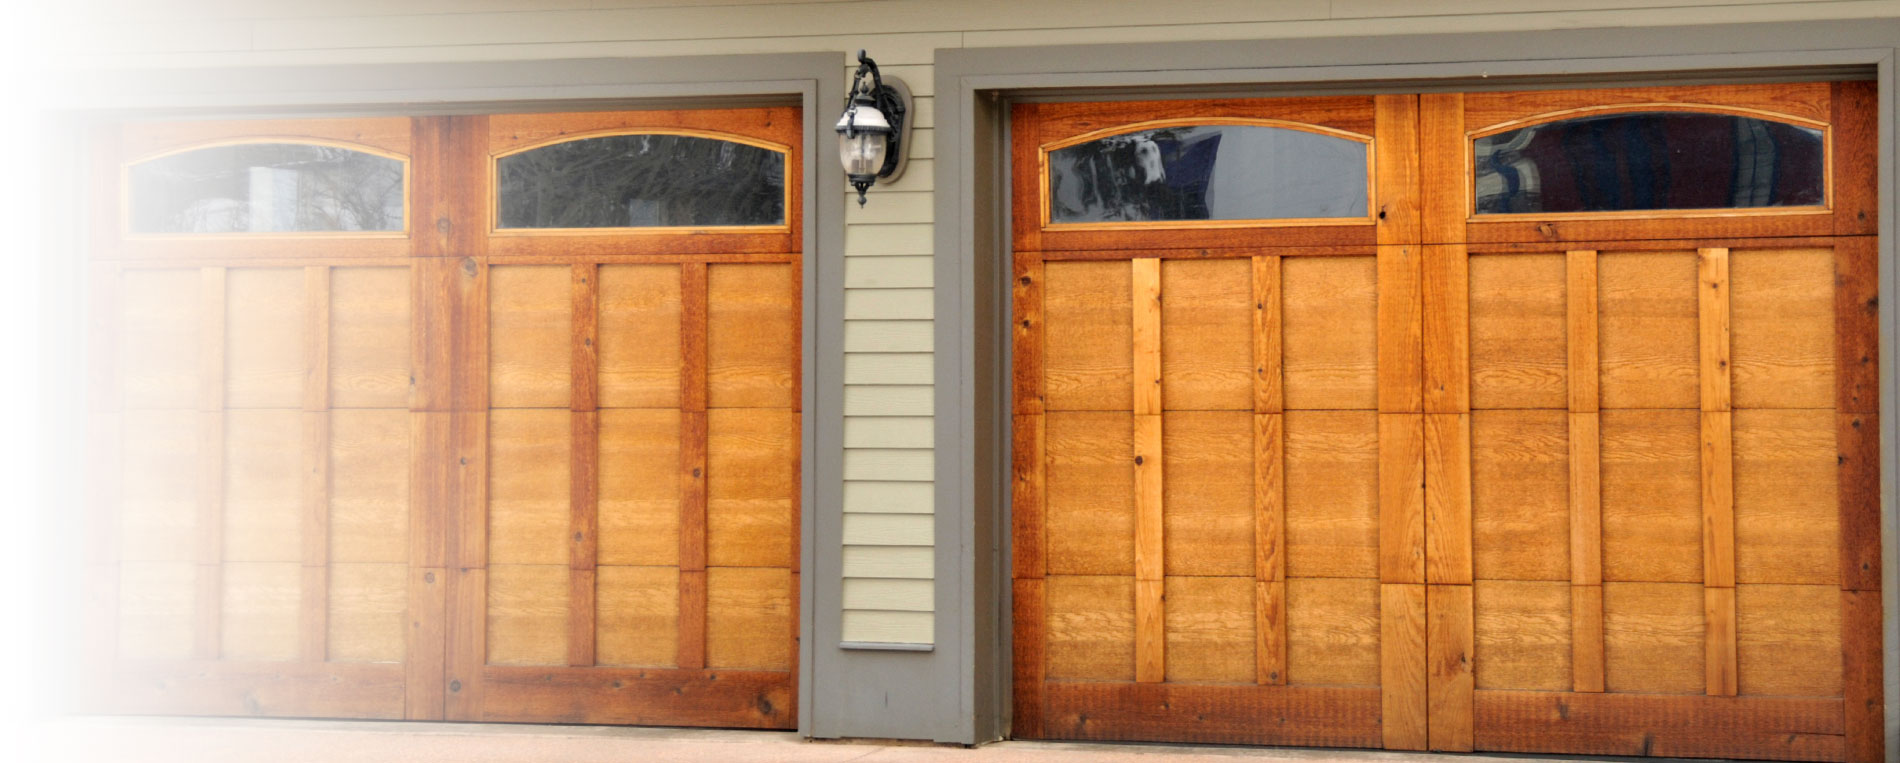 Garage Door Repair North Saint Paul, MN